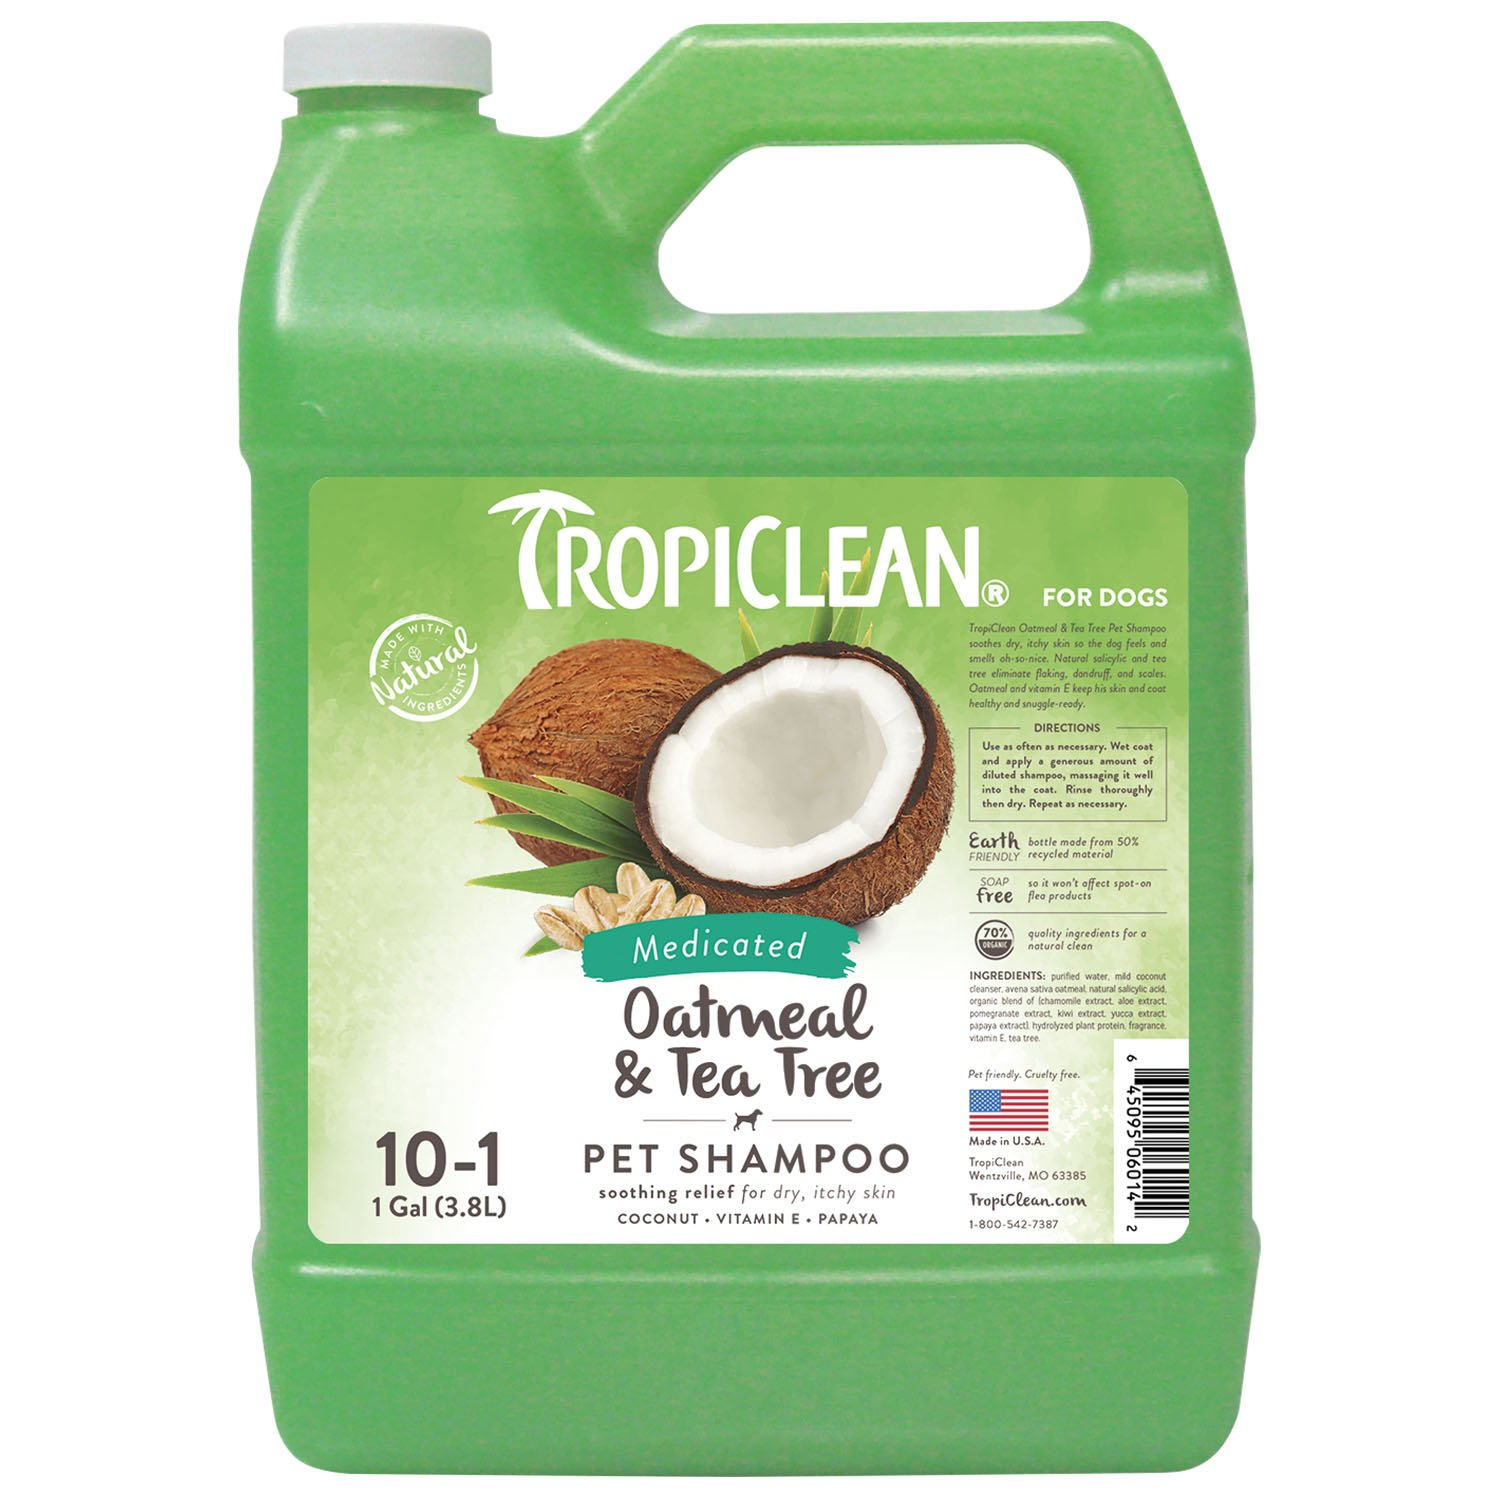 TropiClean Oatmeal and Tea Tree Pet Shampoo Soothes Dry and Itchy Skin Helps Eliminate Flaking Dandruff and Scales 20 oz.